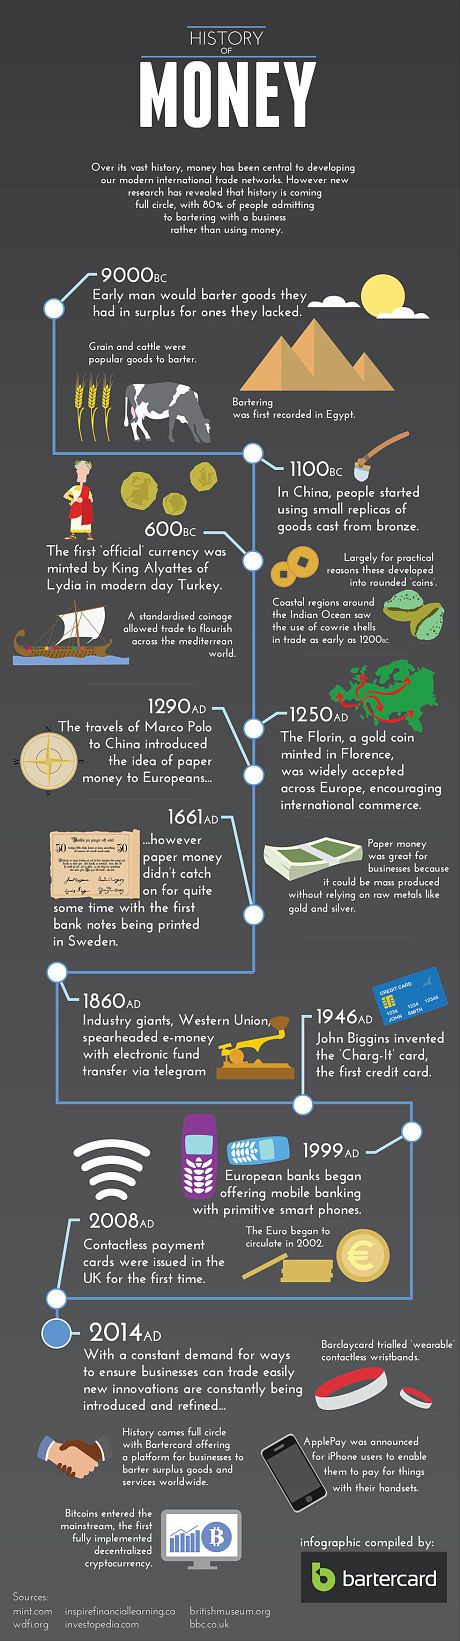 The history of money: from barter to bitcoin - Telegraph